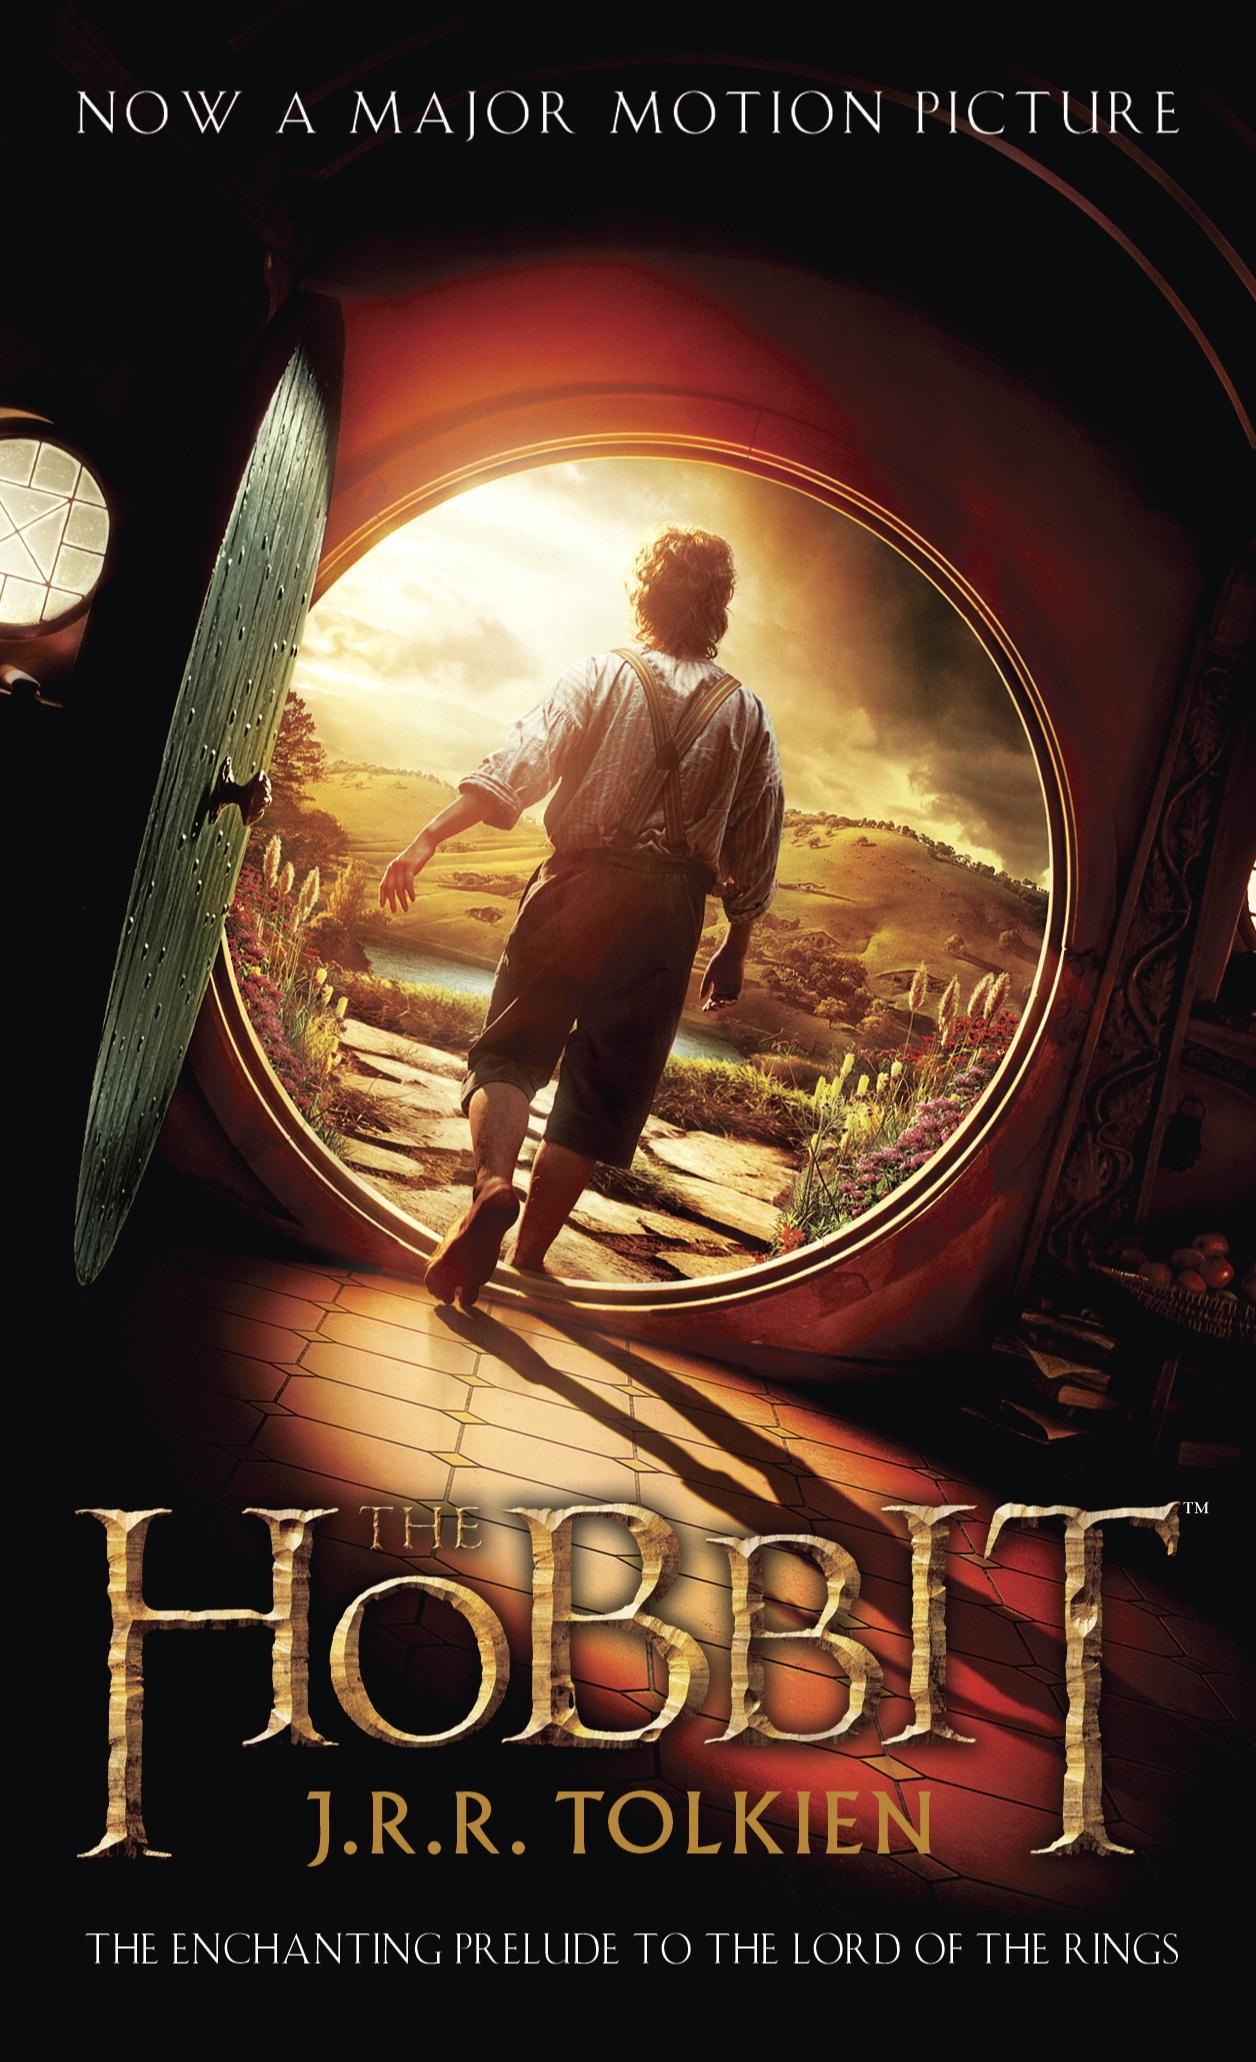 an analysis of the fantasy novel the hobbit by jrr tolkien An illustrated edition of the fantasy classic by jrr tolkien illustrated by david wenzel adapted by chuck dixon and sean deming  about the hobbit (graphic novel)  about jrr tolkien jrr tolkien was born on january 3, 1892 in south africa.